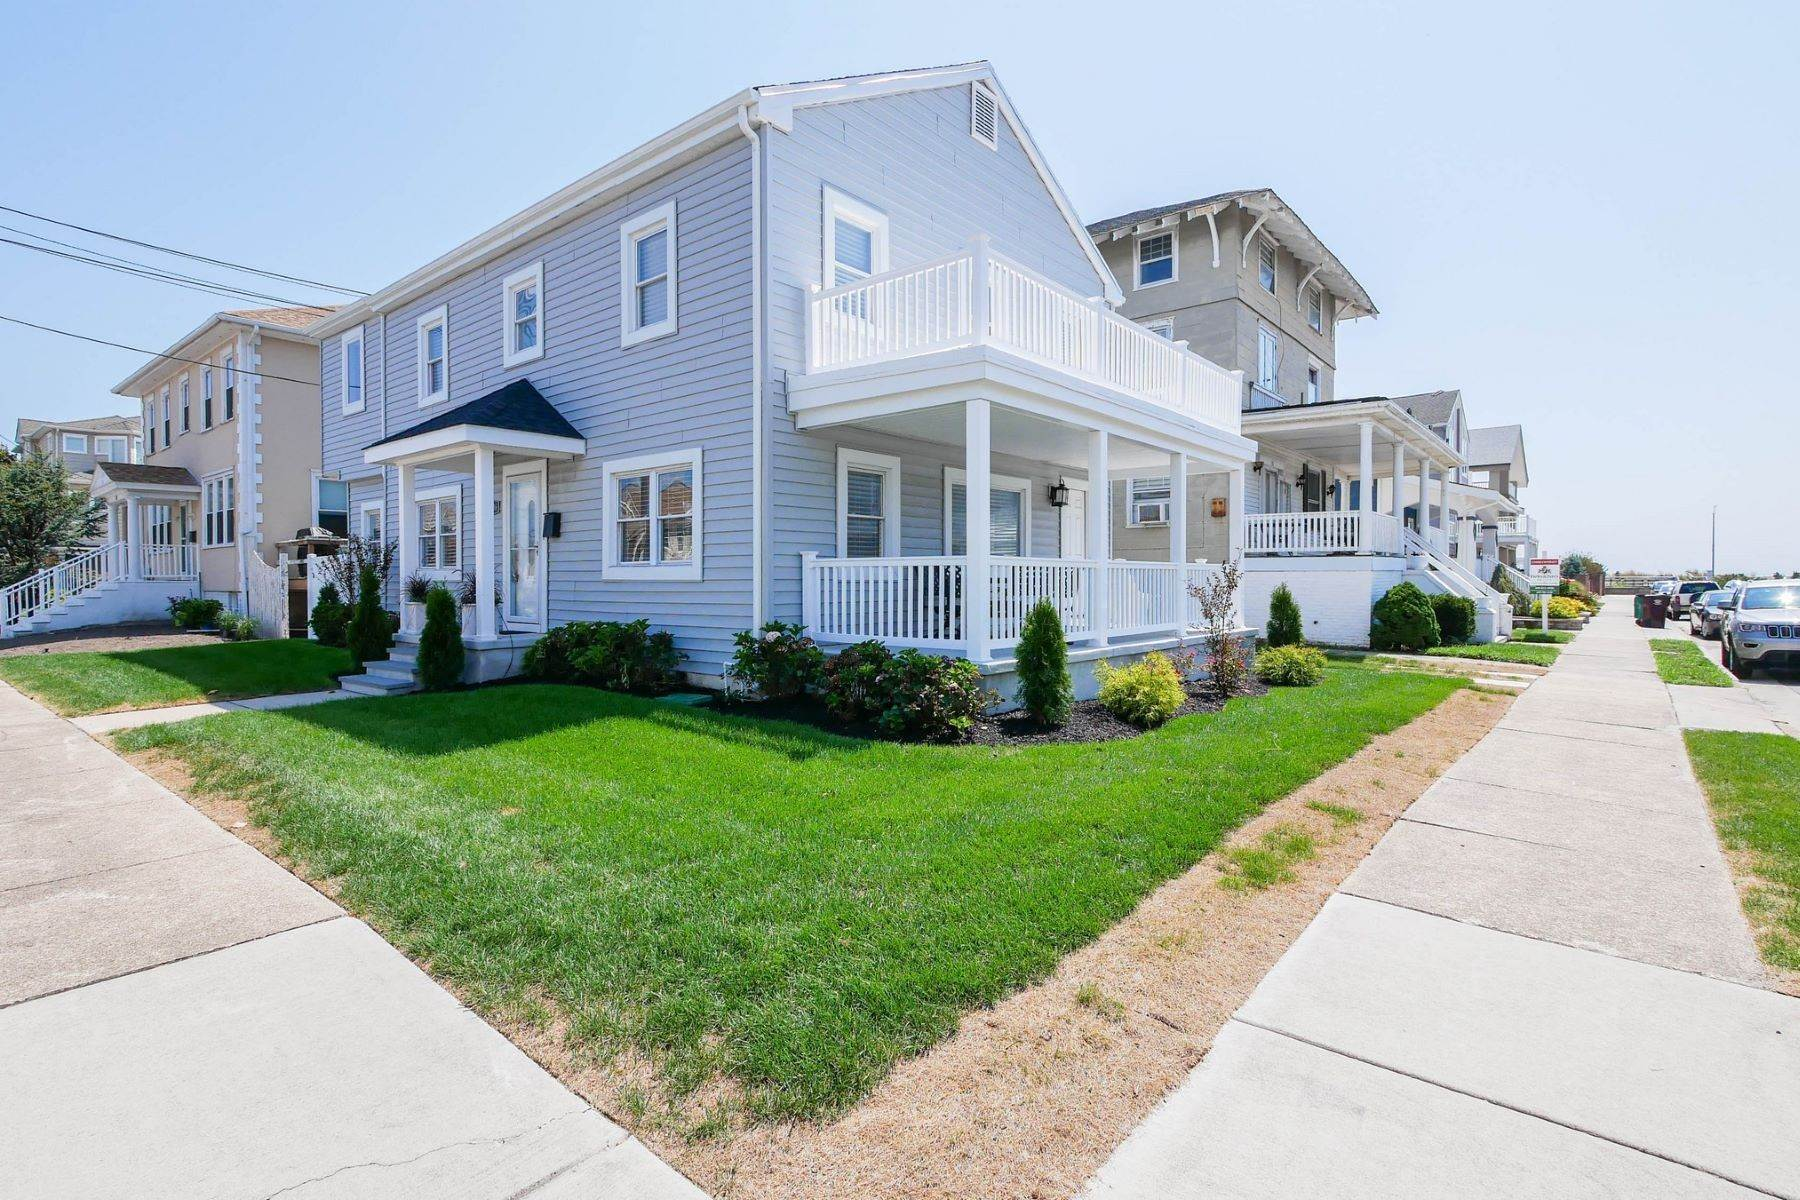 2. Single Family Homes for Sale at 101 S Portland 101 S. Portland Ave Ventnor, New Jersey 08406 United States